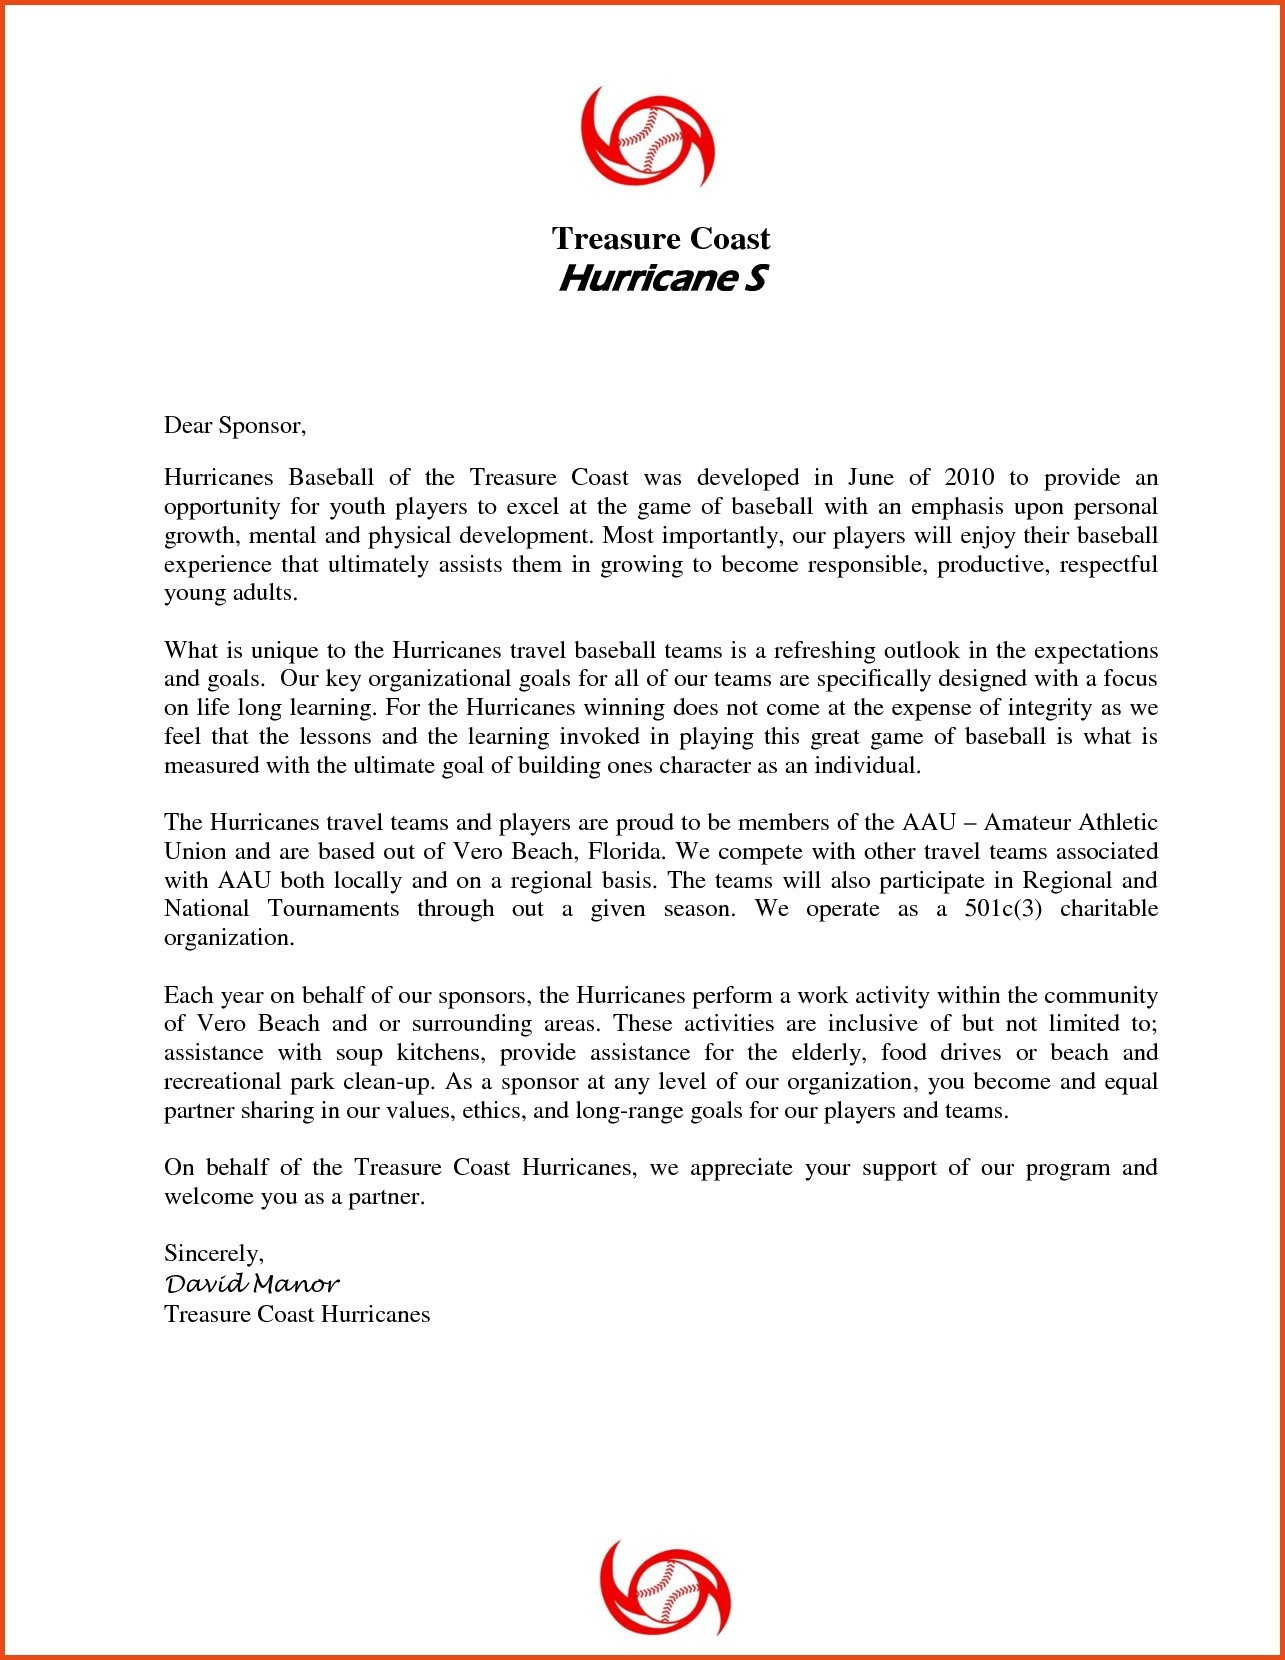 Personal Fundraising Letter Template - Request Letter format for Endorsement Fresh Sample Sponsorship